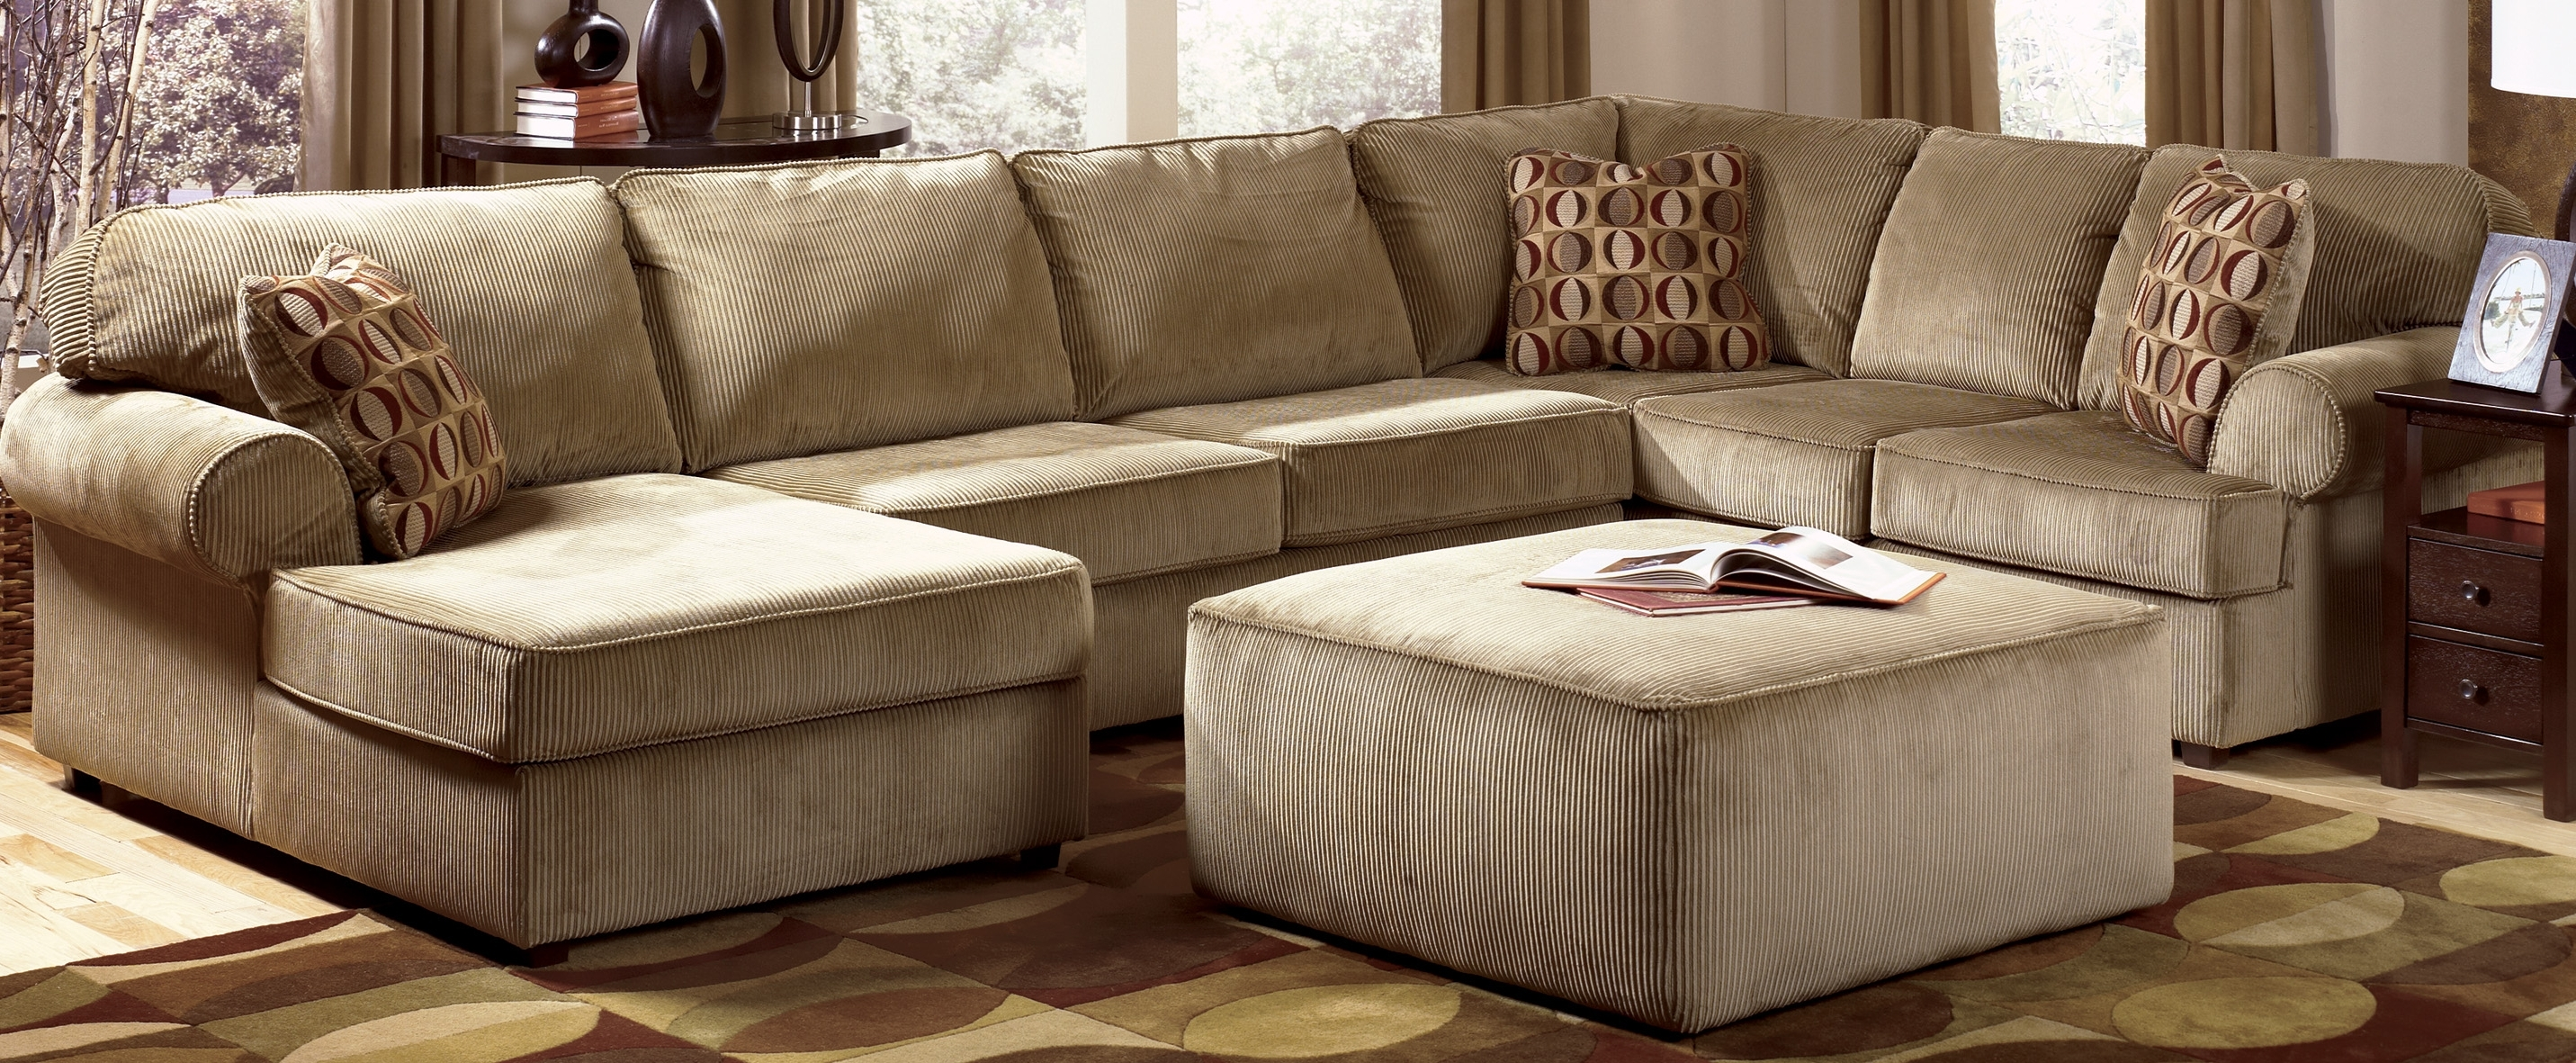 Inexpensive Sectional Sofas For Small Spaces Inside Recent Sofa : Sleep Sofas For Small Spaces Leather Sectionals Rooms To Go (View 12 of 20)